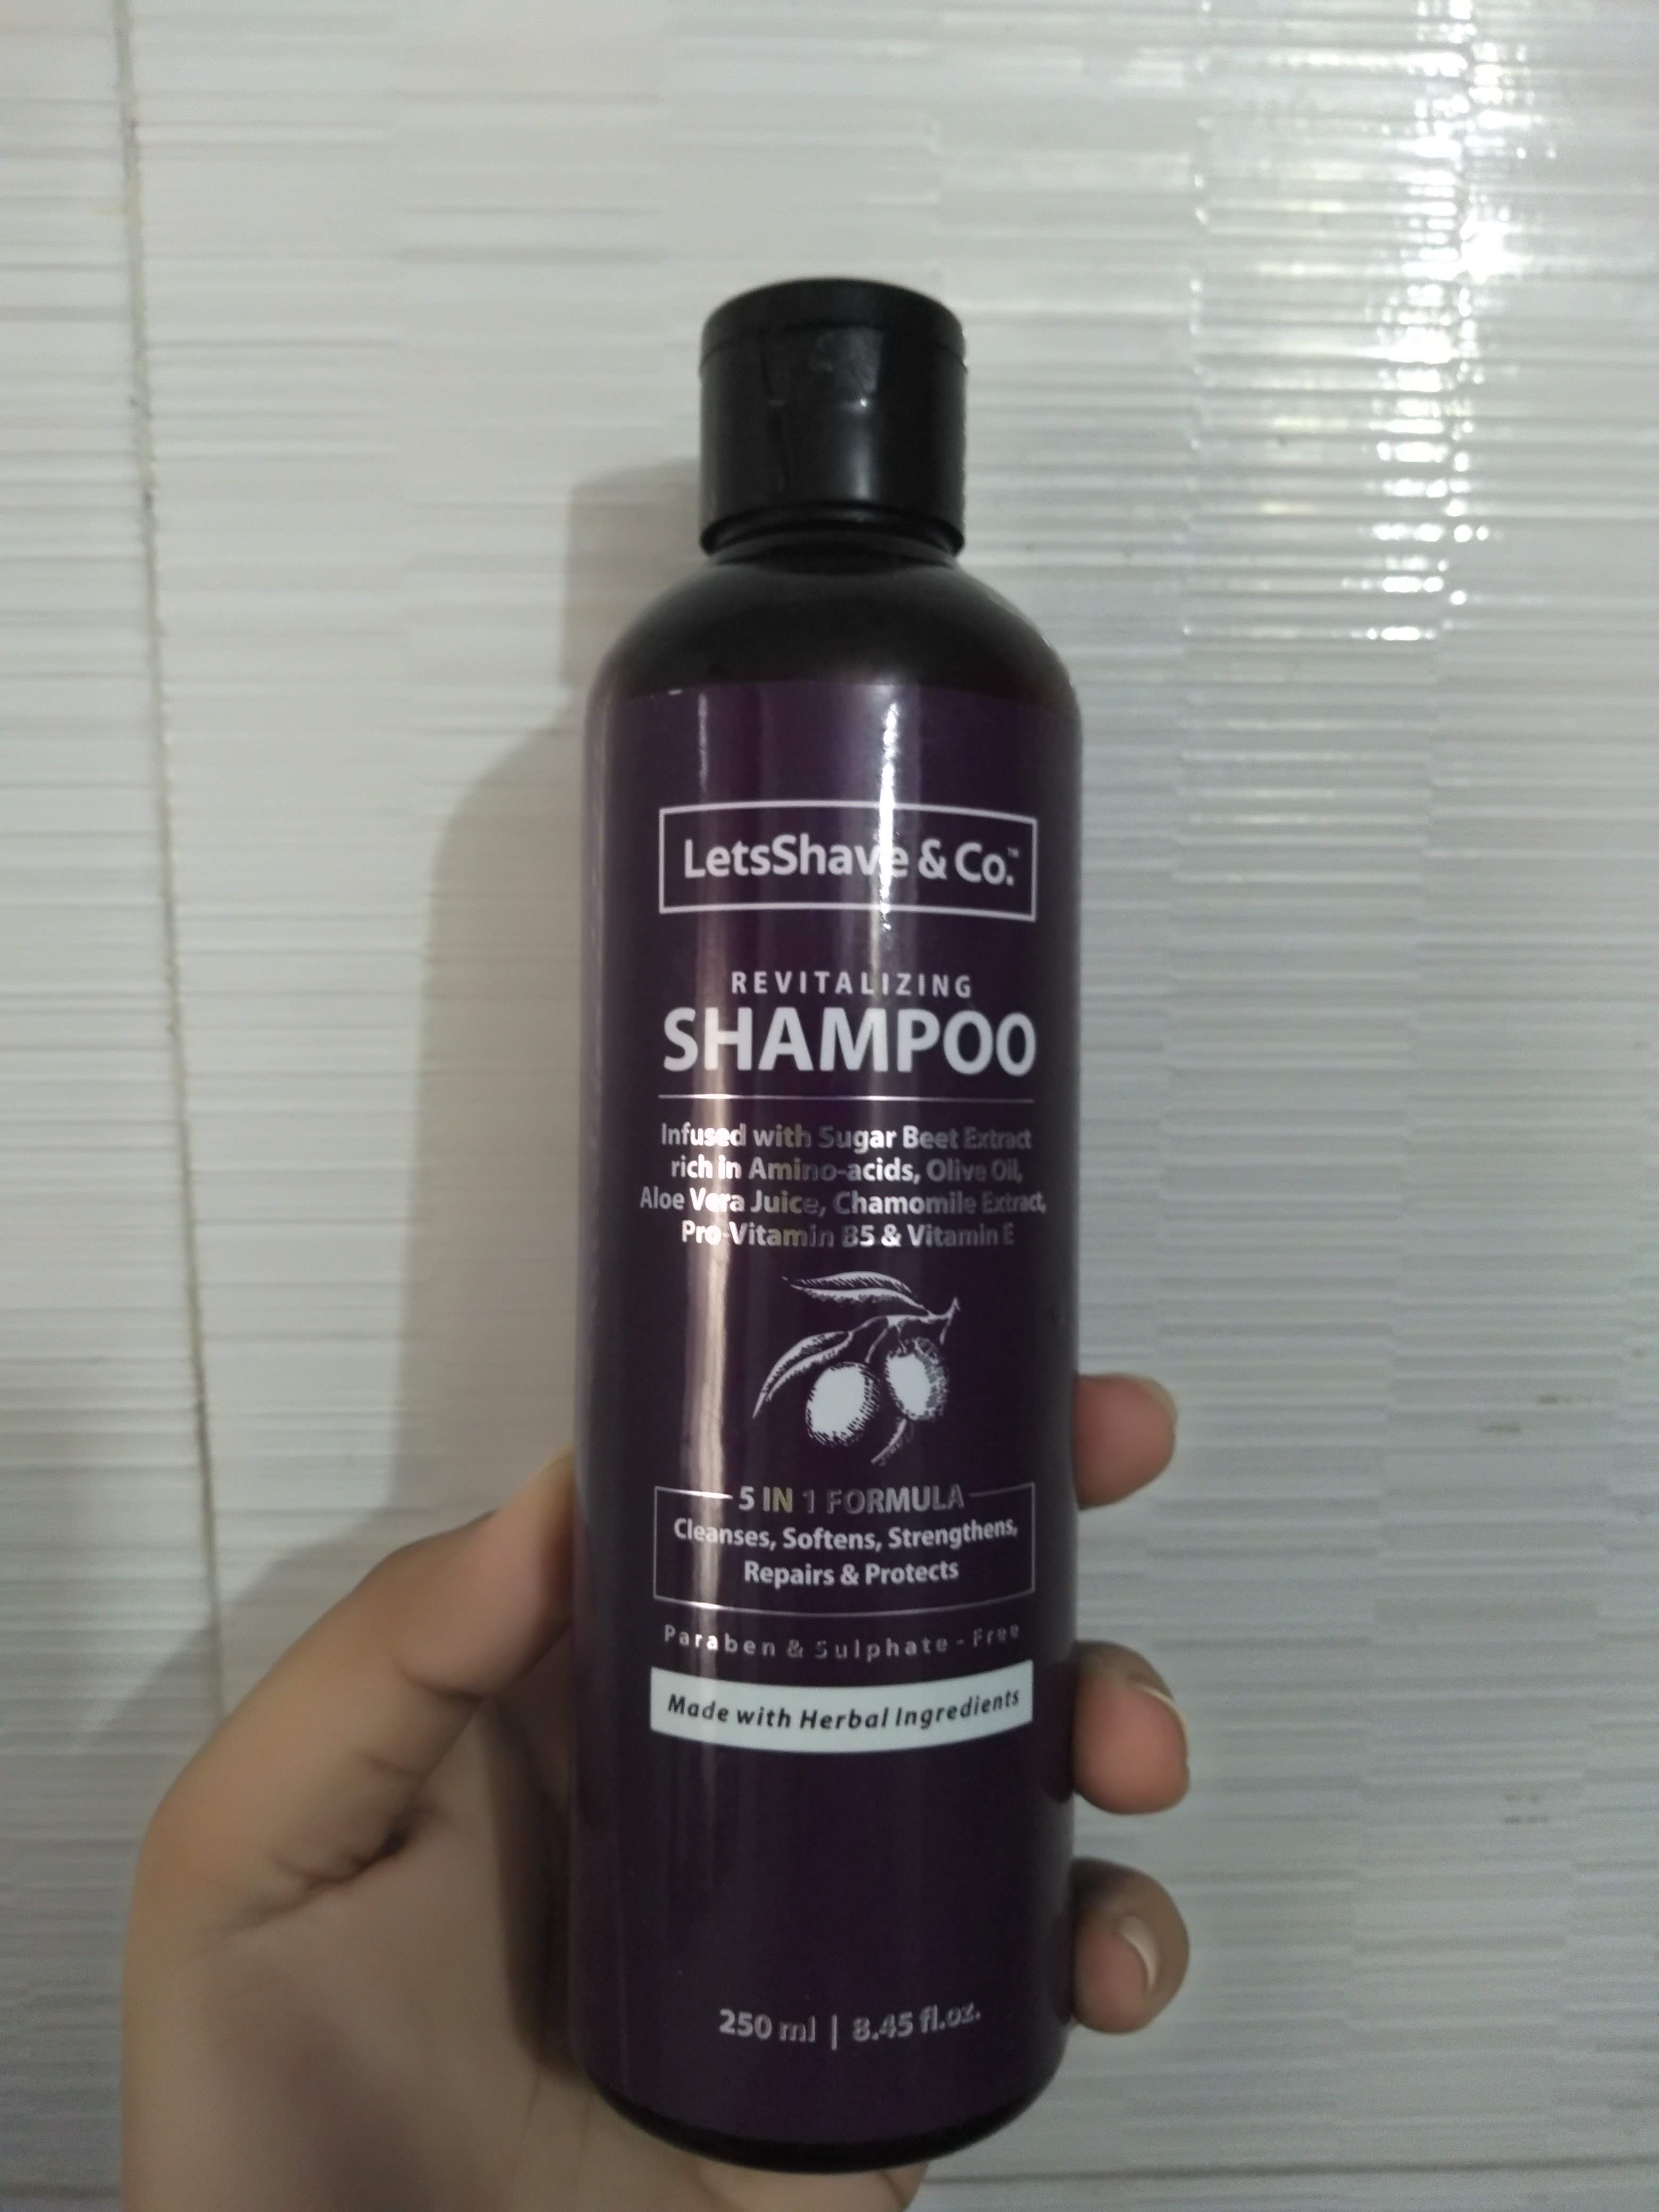 fab-review-Must have Shampoo Conditioner Pack!-By kirtidargad1998-2